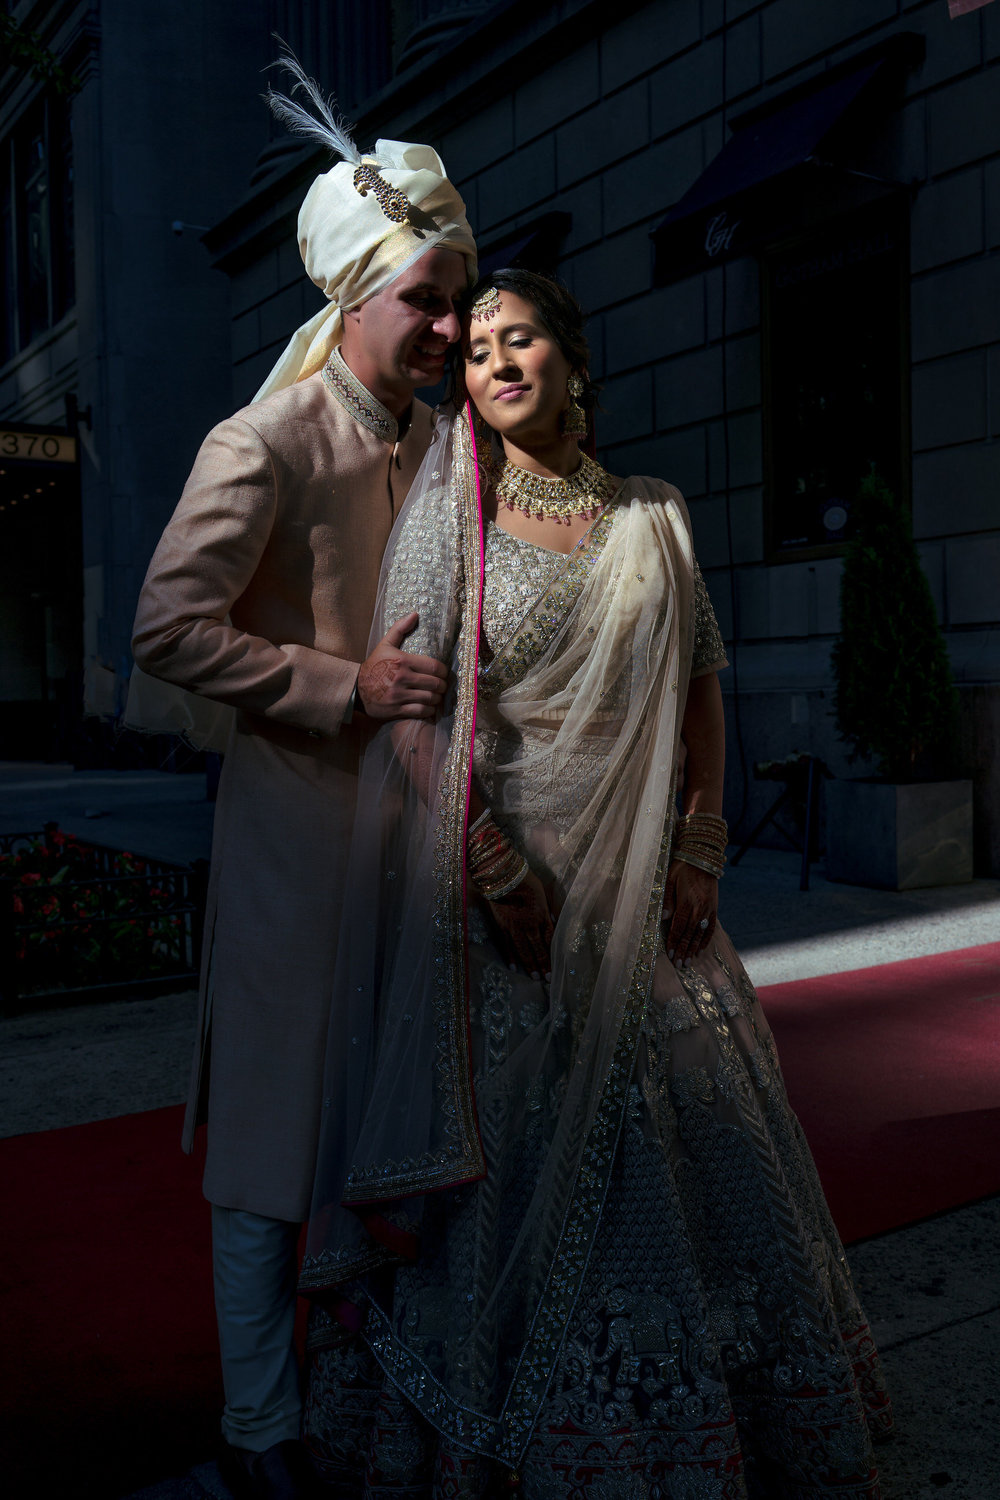 INDIAN WEDDING BRIDE AND GROOM WEDDING ATTIRE.JPG